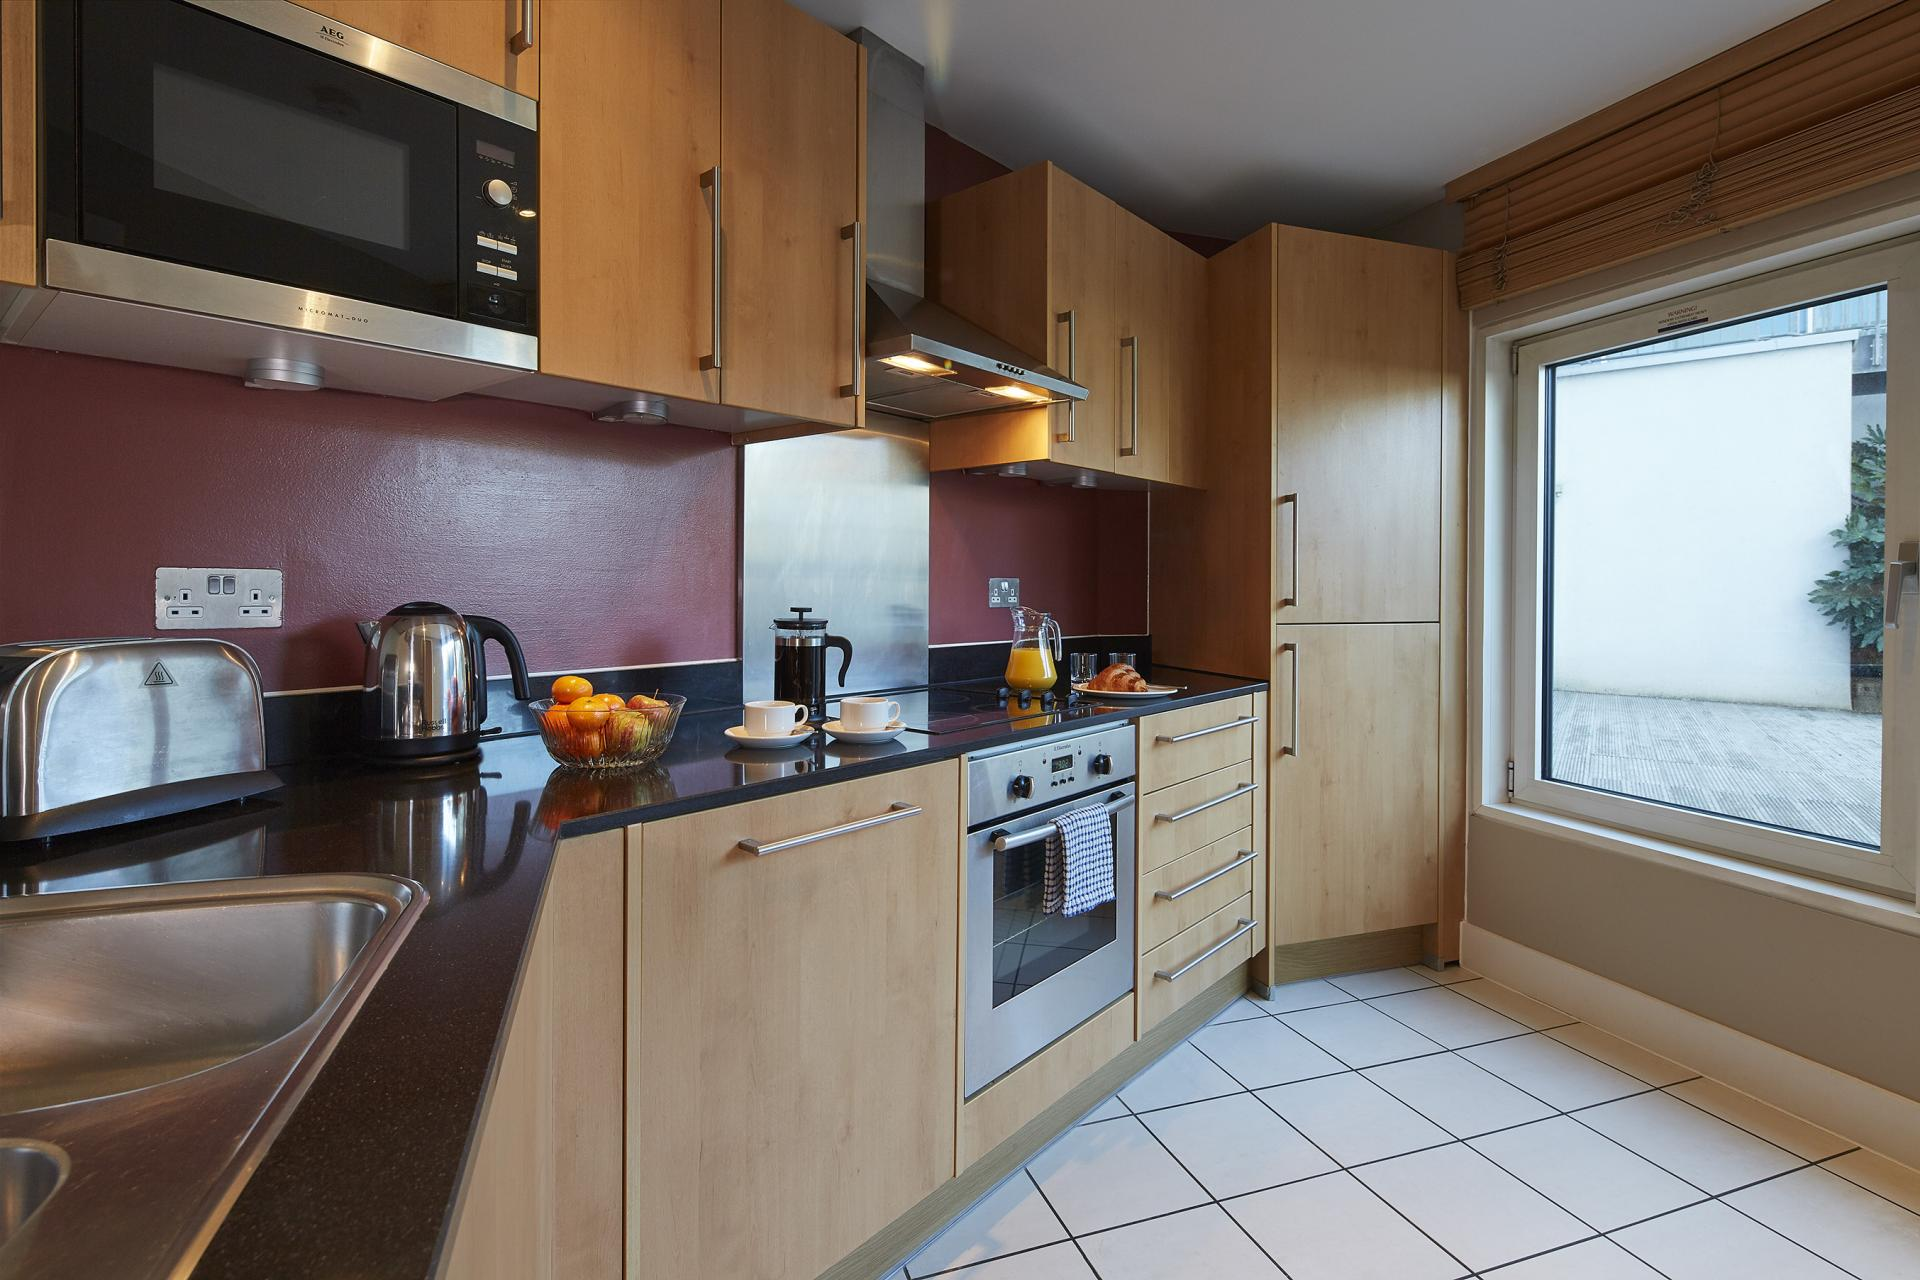 Modern kitchen at Empire Square Apartments, London Bridge, London - Citybase Apartments